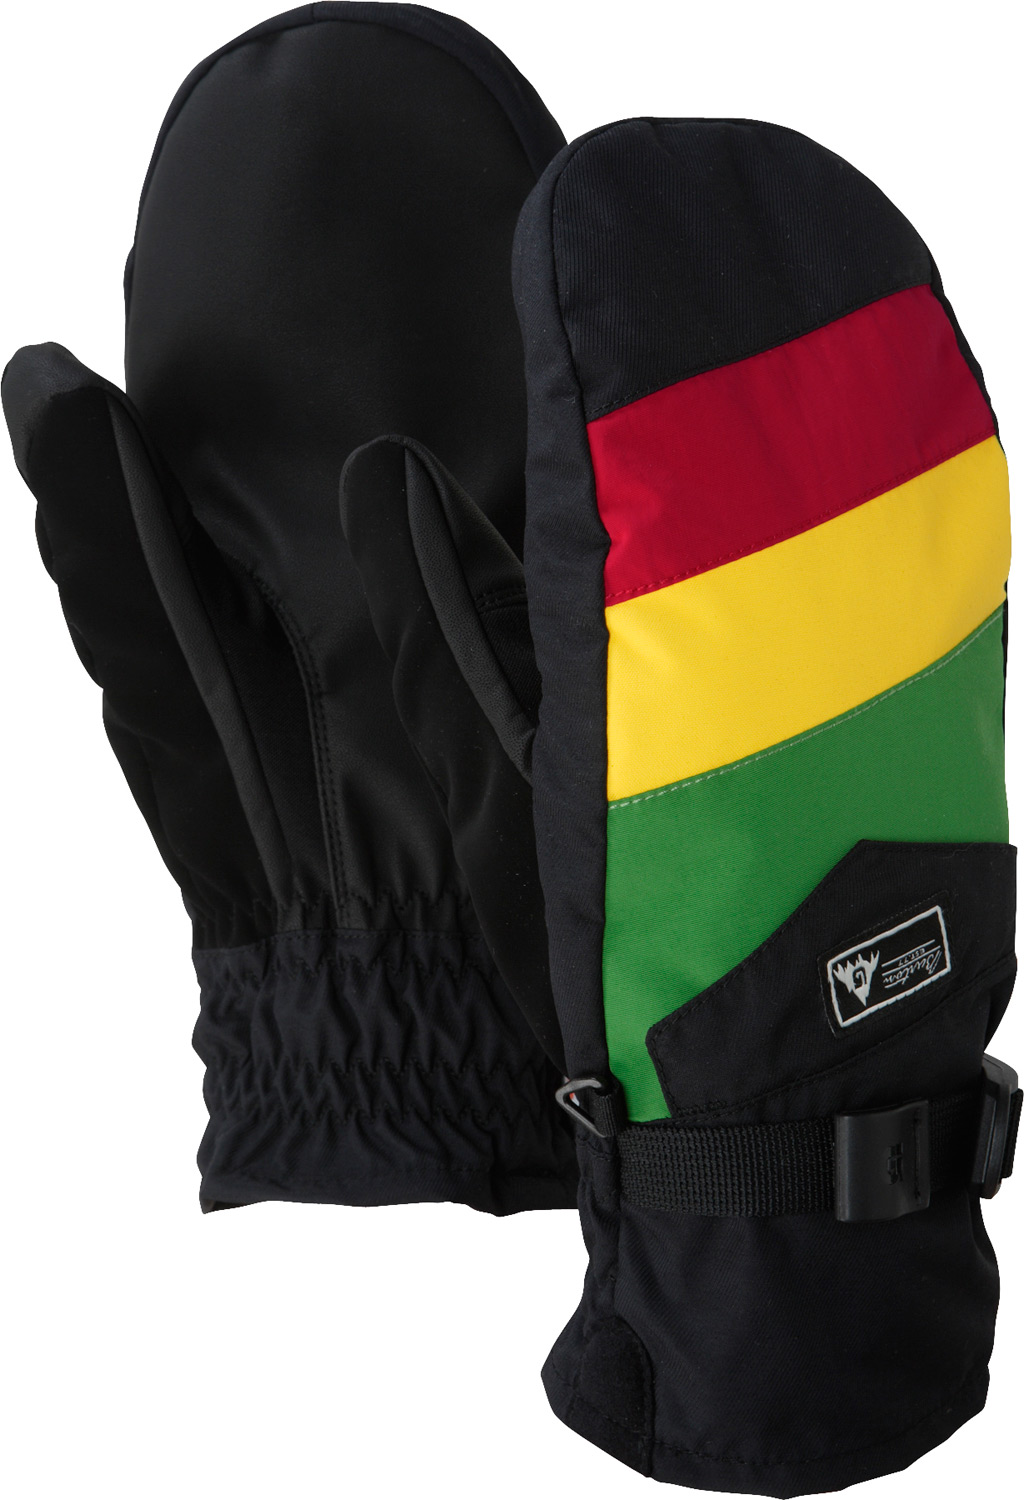 Snowboard Adapt to any condition-the team's favorite for 3-in-1 versatility.Key Features of the Burton Approach 12 Under Snowboard Mittens: DRYRIDE Ultrashell 220G Removable Liner TougGrip Palm Soft Chamois Goggle Wipe Pistol Grip pre-curved fit - $36.95